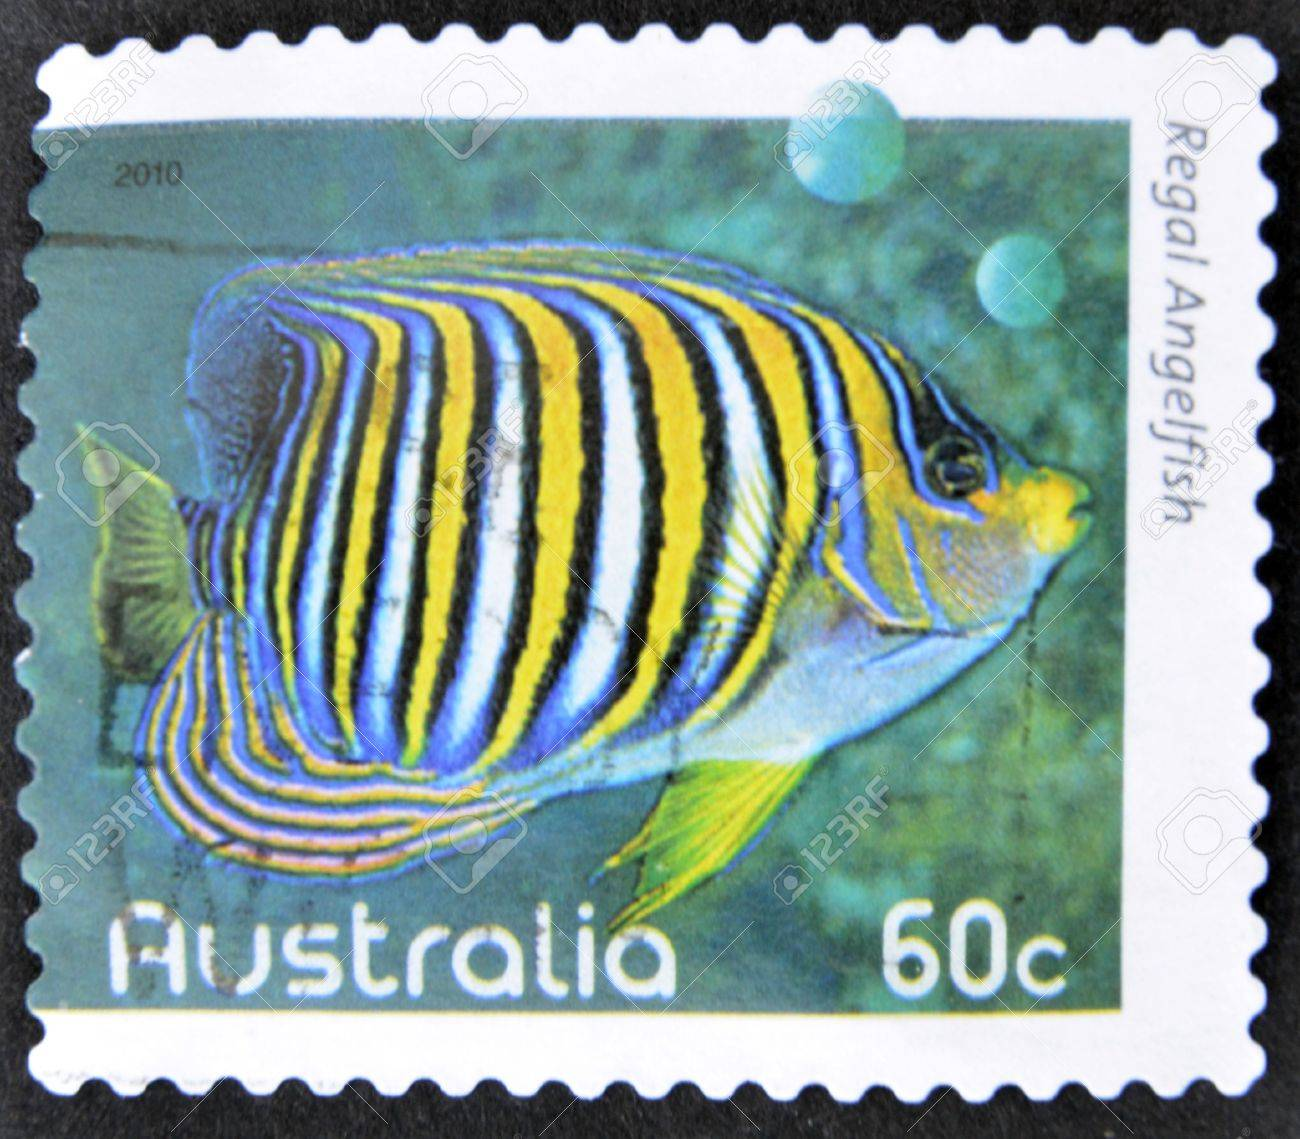 AUSTRALIA - CIRCA 2010: A stamp printed in Australia shows an image of regal angelfish coral faith, inventive, circa 2010 Stock Photo - 14596823